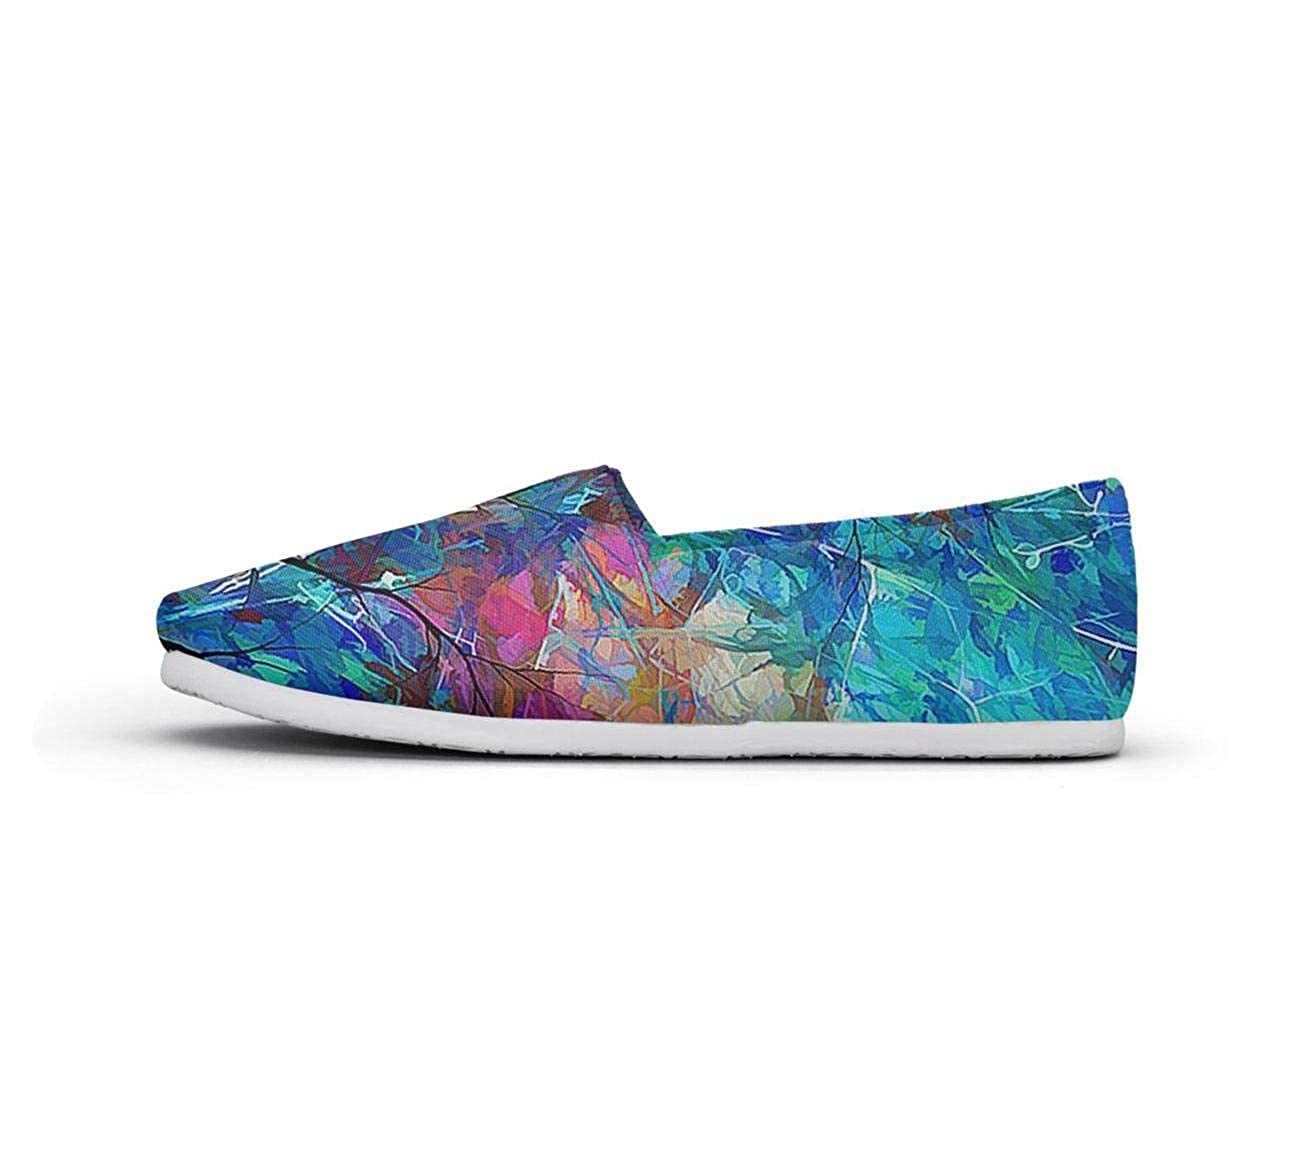 nkfbx Colorful Tree Fashion Flat Canva Shoes for Women Running